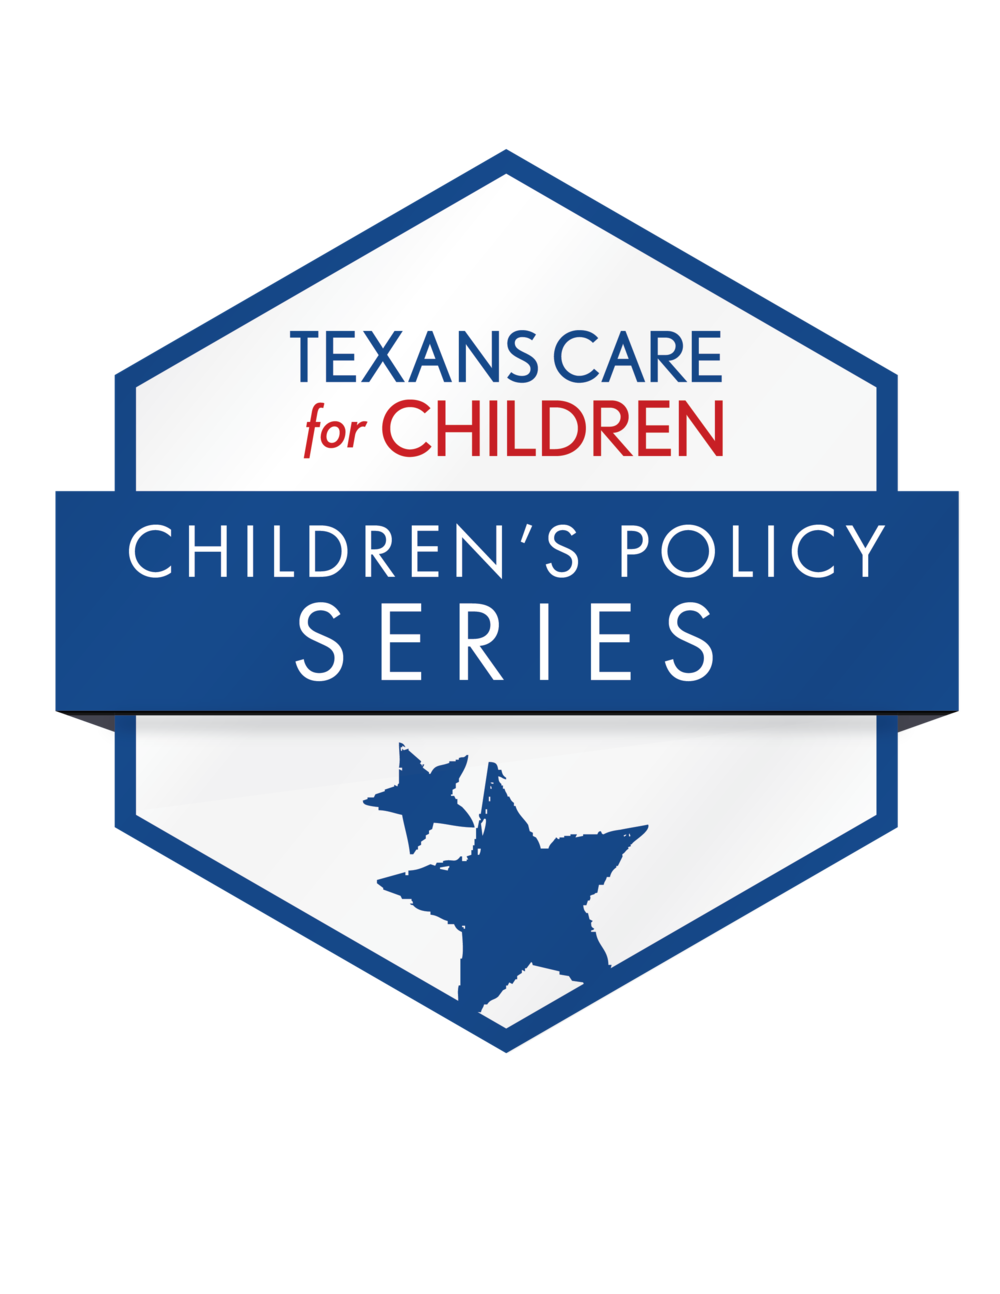 ChildrensPolicySeries_LOGO_hex_v2.png